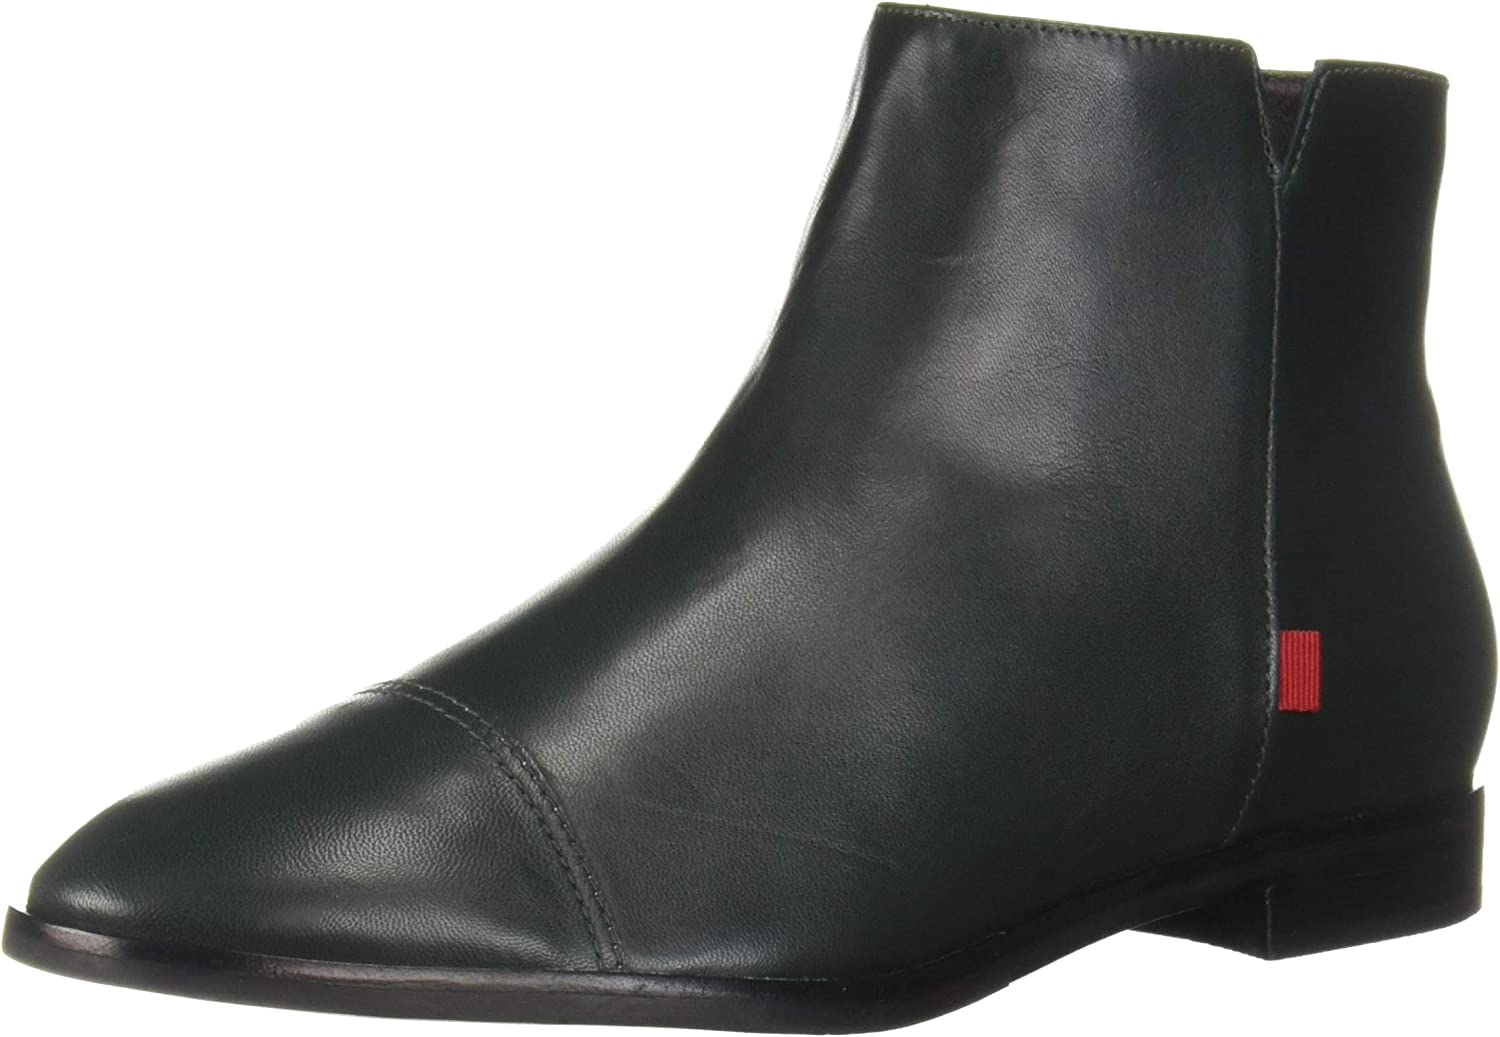 MARC JOSEPH NEW YORK Women's Leather Made in Brazil Soho Bootie Ankle Boot